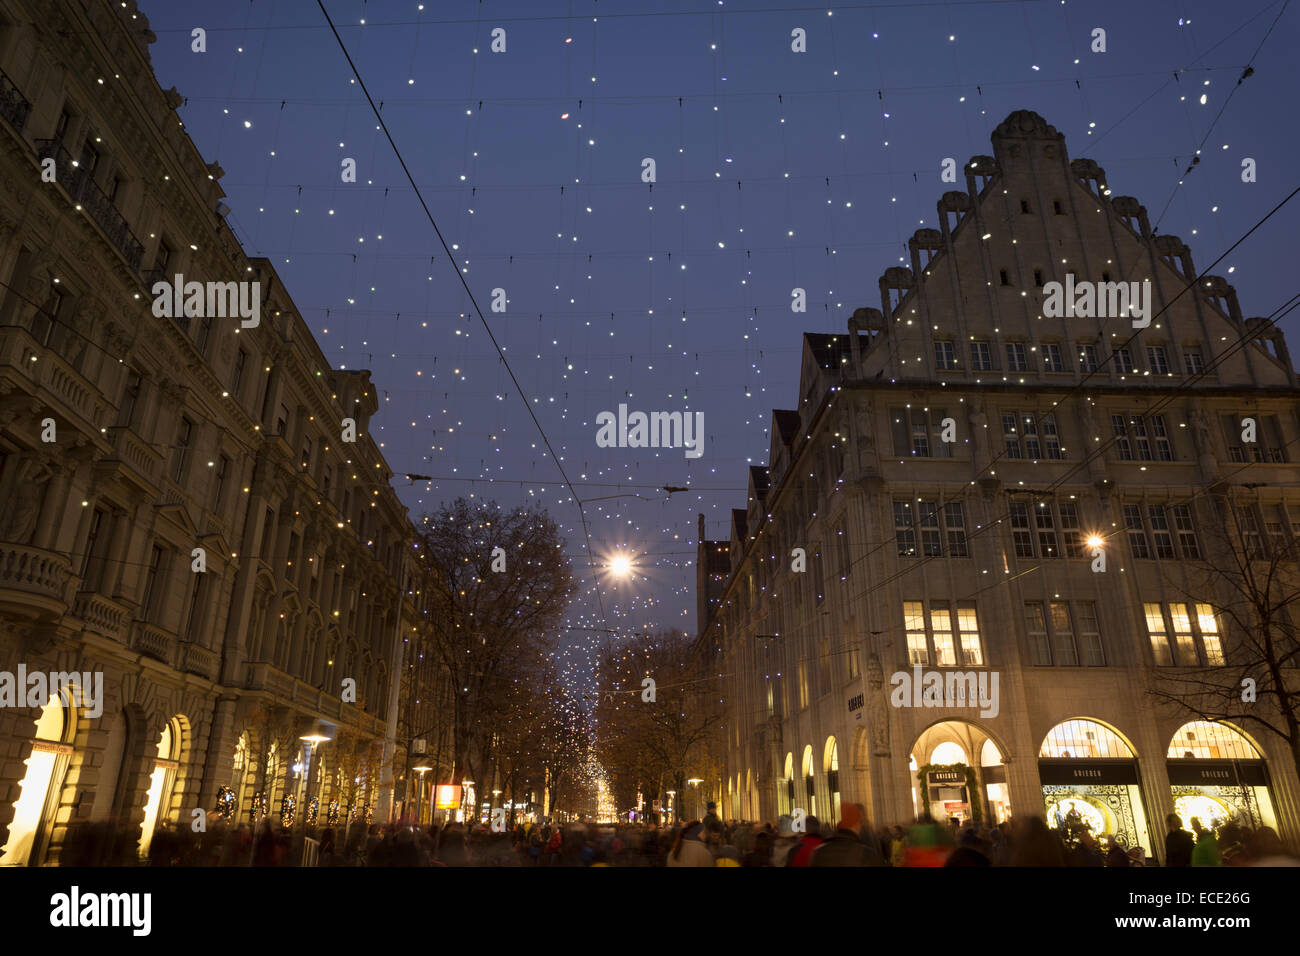 Christmas illumination Lucy over the Bahnhofstrasse, Zurich, Switzerland. - Stock Image